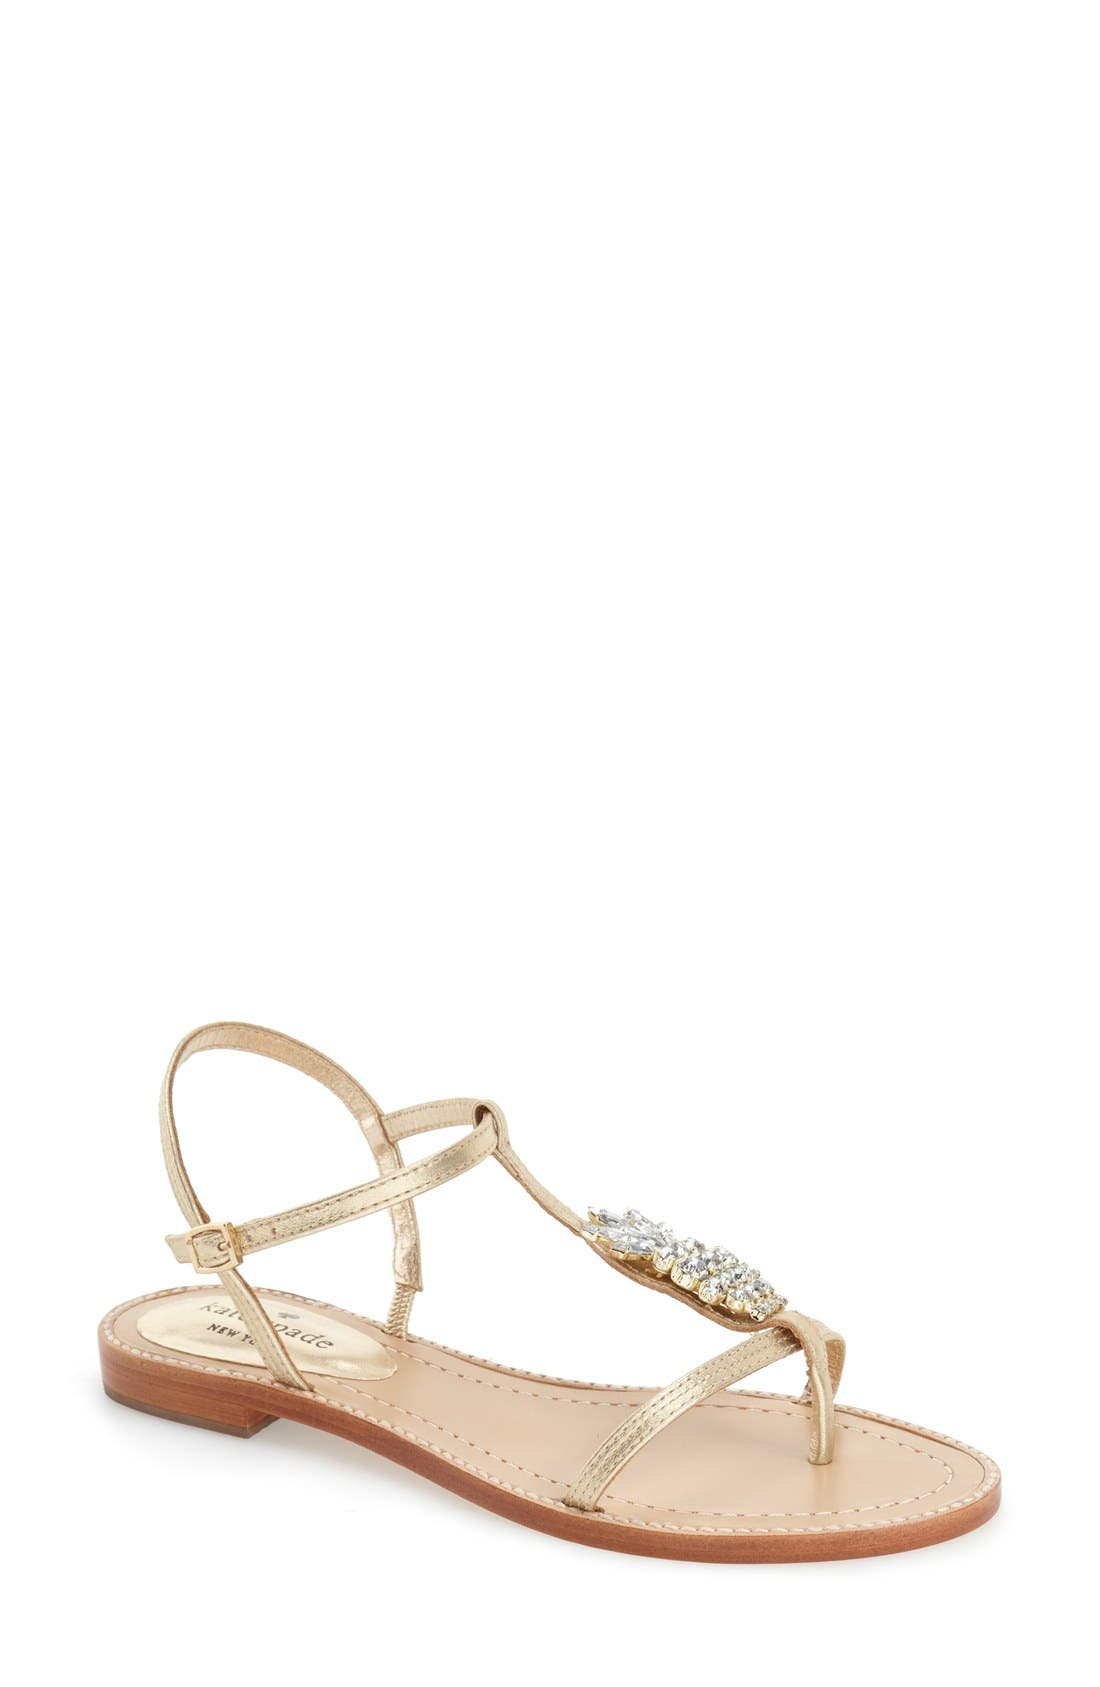 Main Image - kate spade new york 'serafina' crystal pineapple flat sandal (Women)